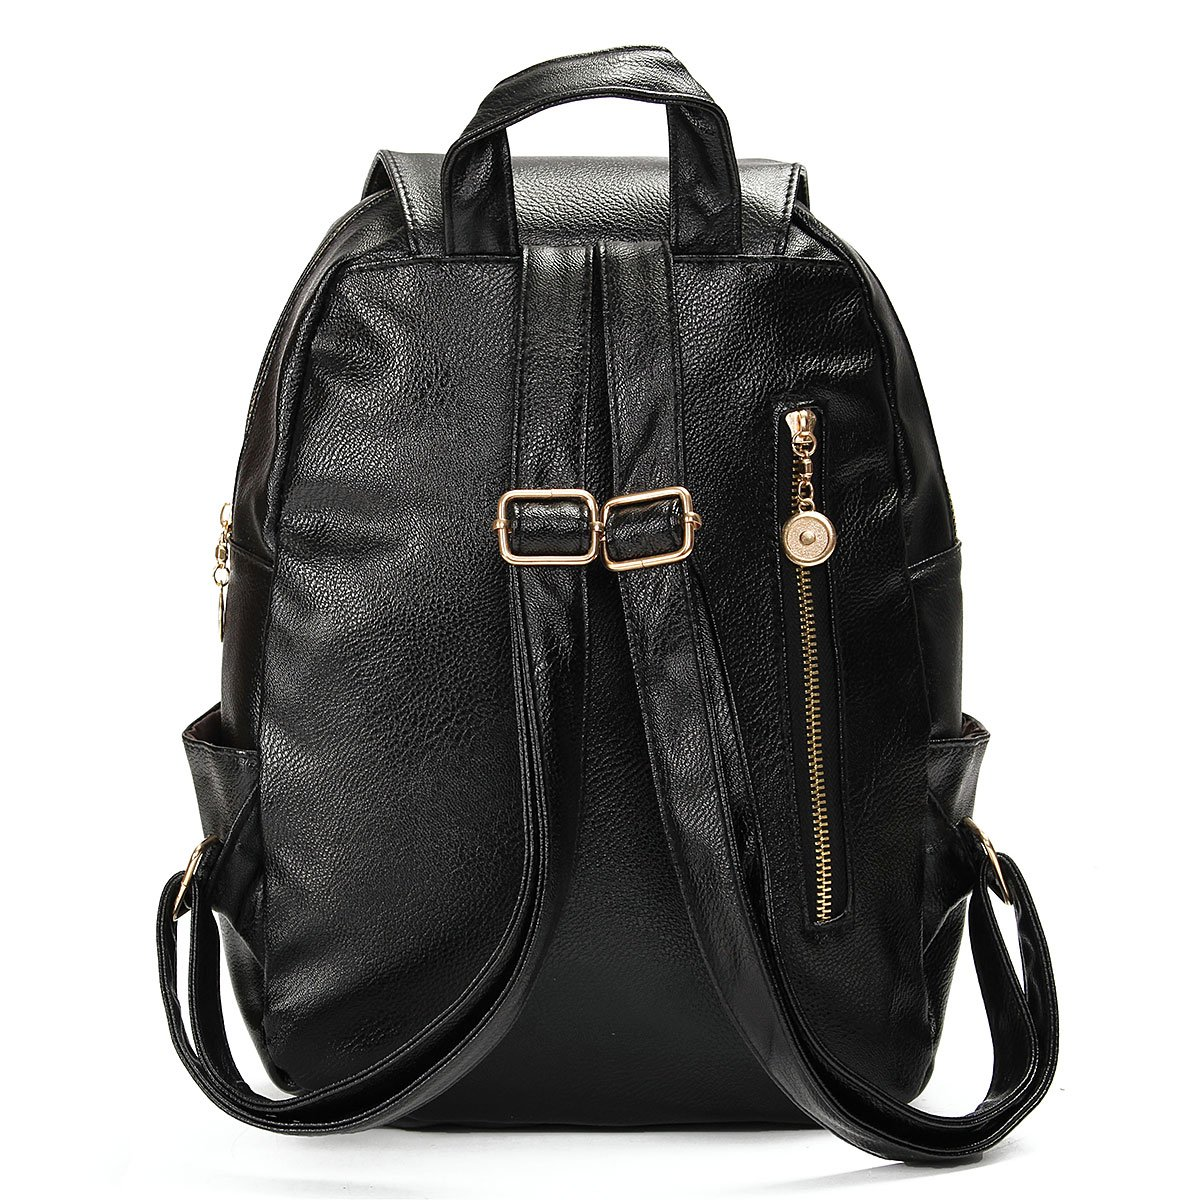 69c7d8d2492d Amazon.com  OURBAG Vintage PU Leather Backpack School College Bookbag Laptop  Satchel Bookbag Black  Clothing